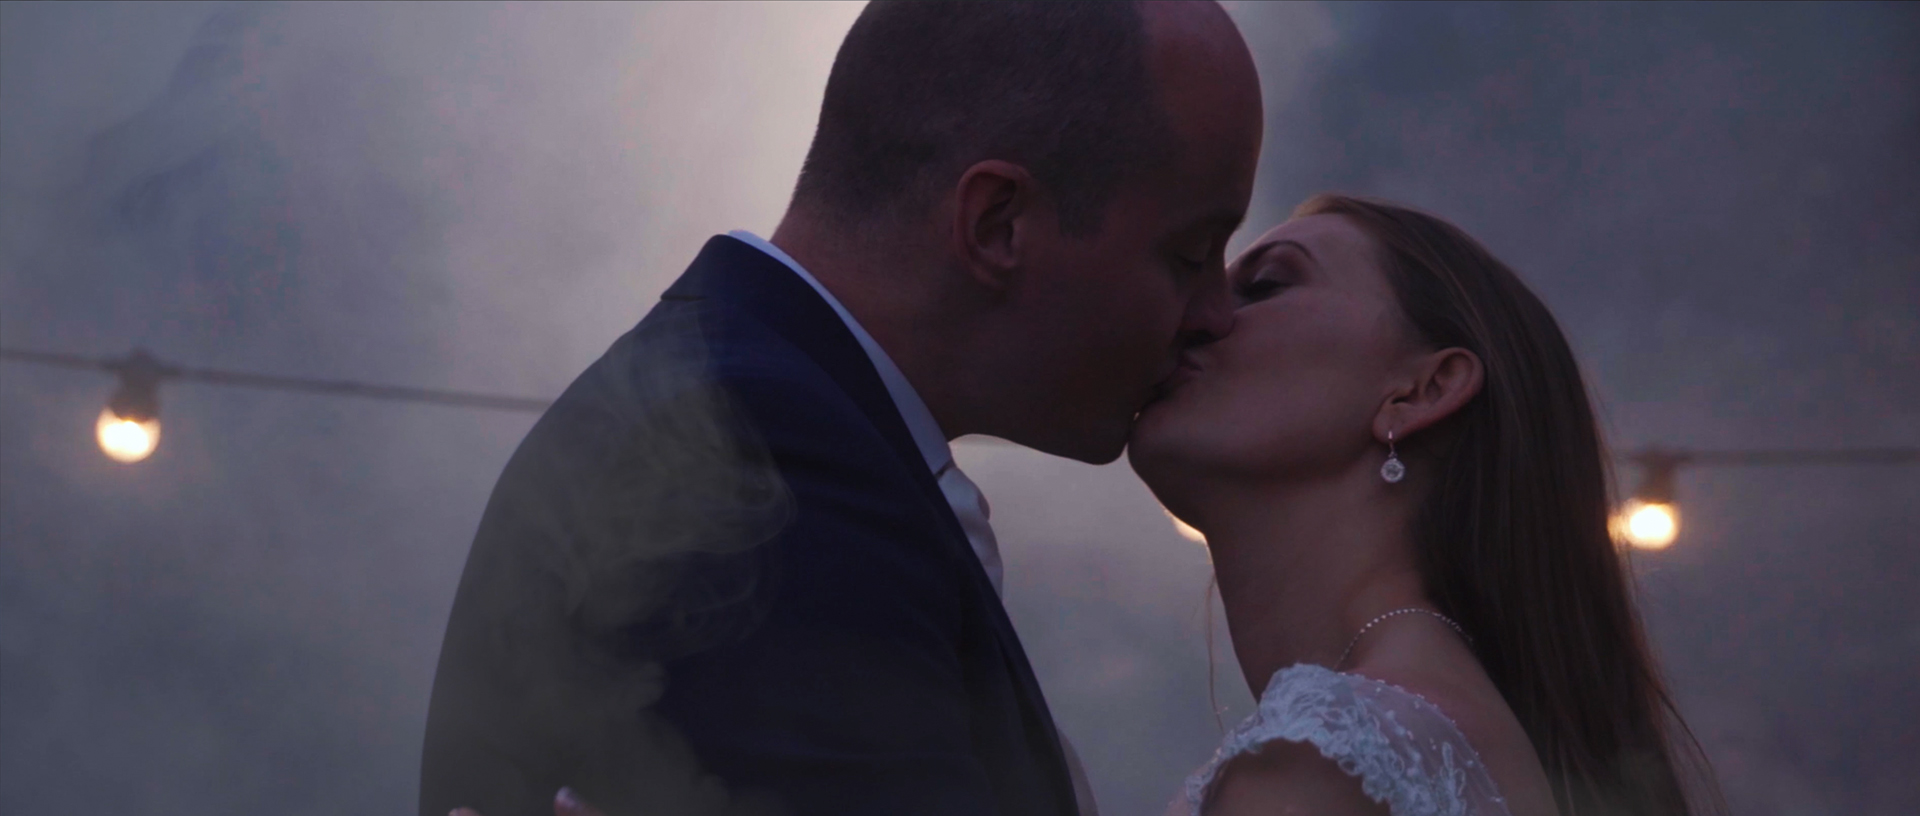 Bartle Hall Wedding Video